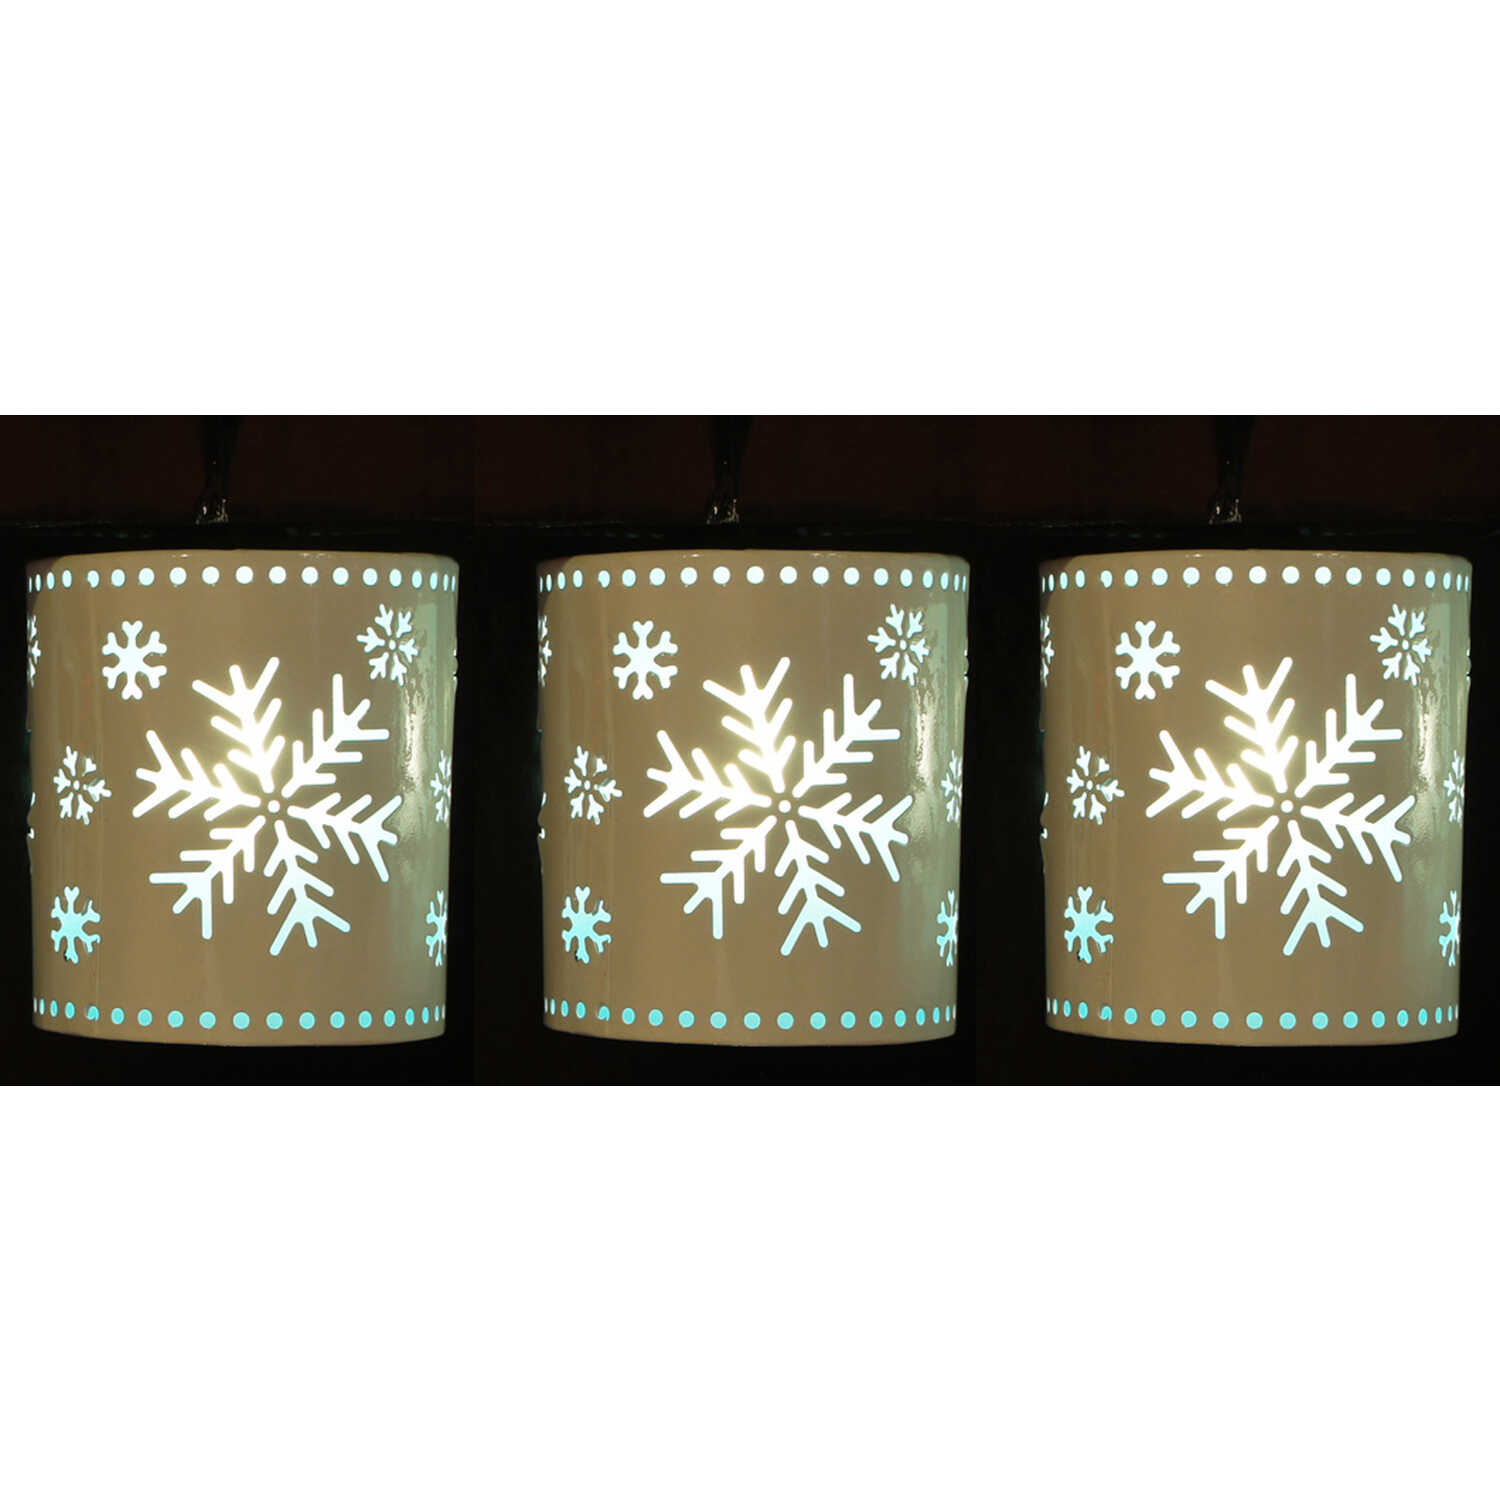 Sienna  Snowflake Lantern  Christmas Decoration  Tan  Metal  1 pk